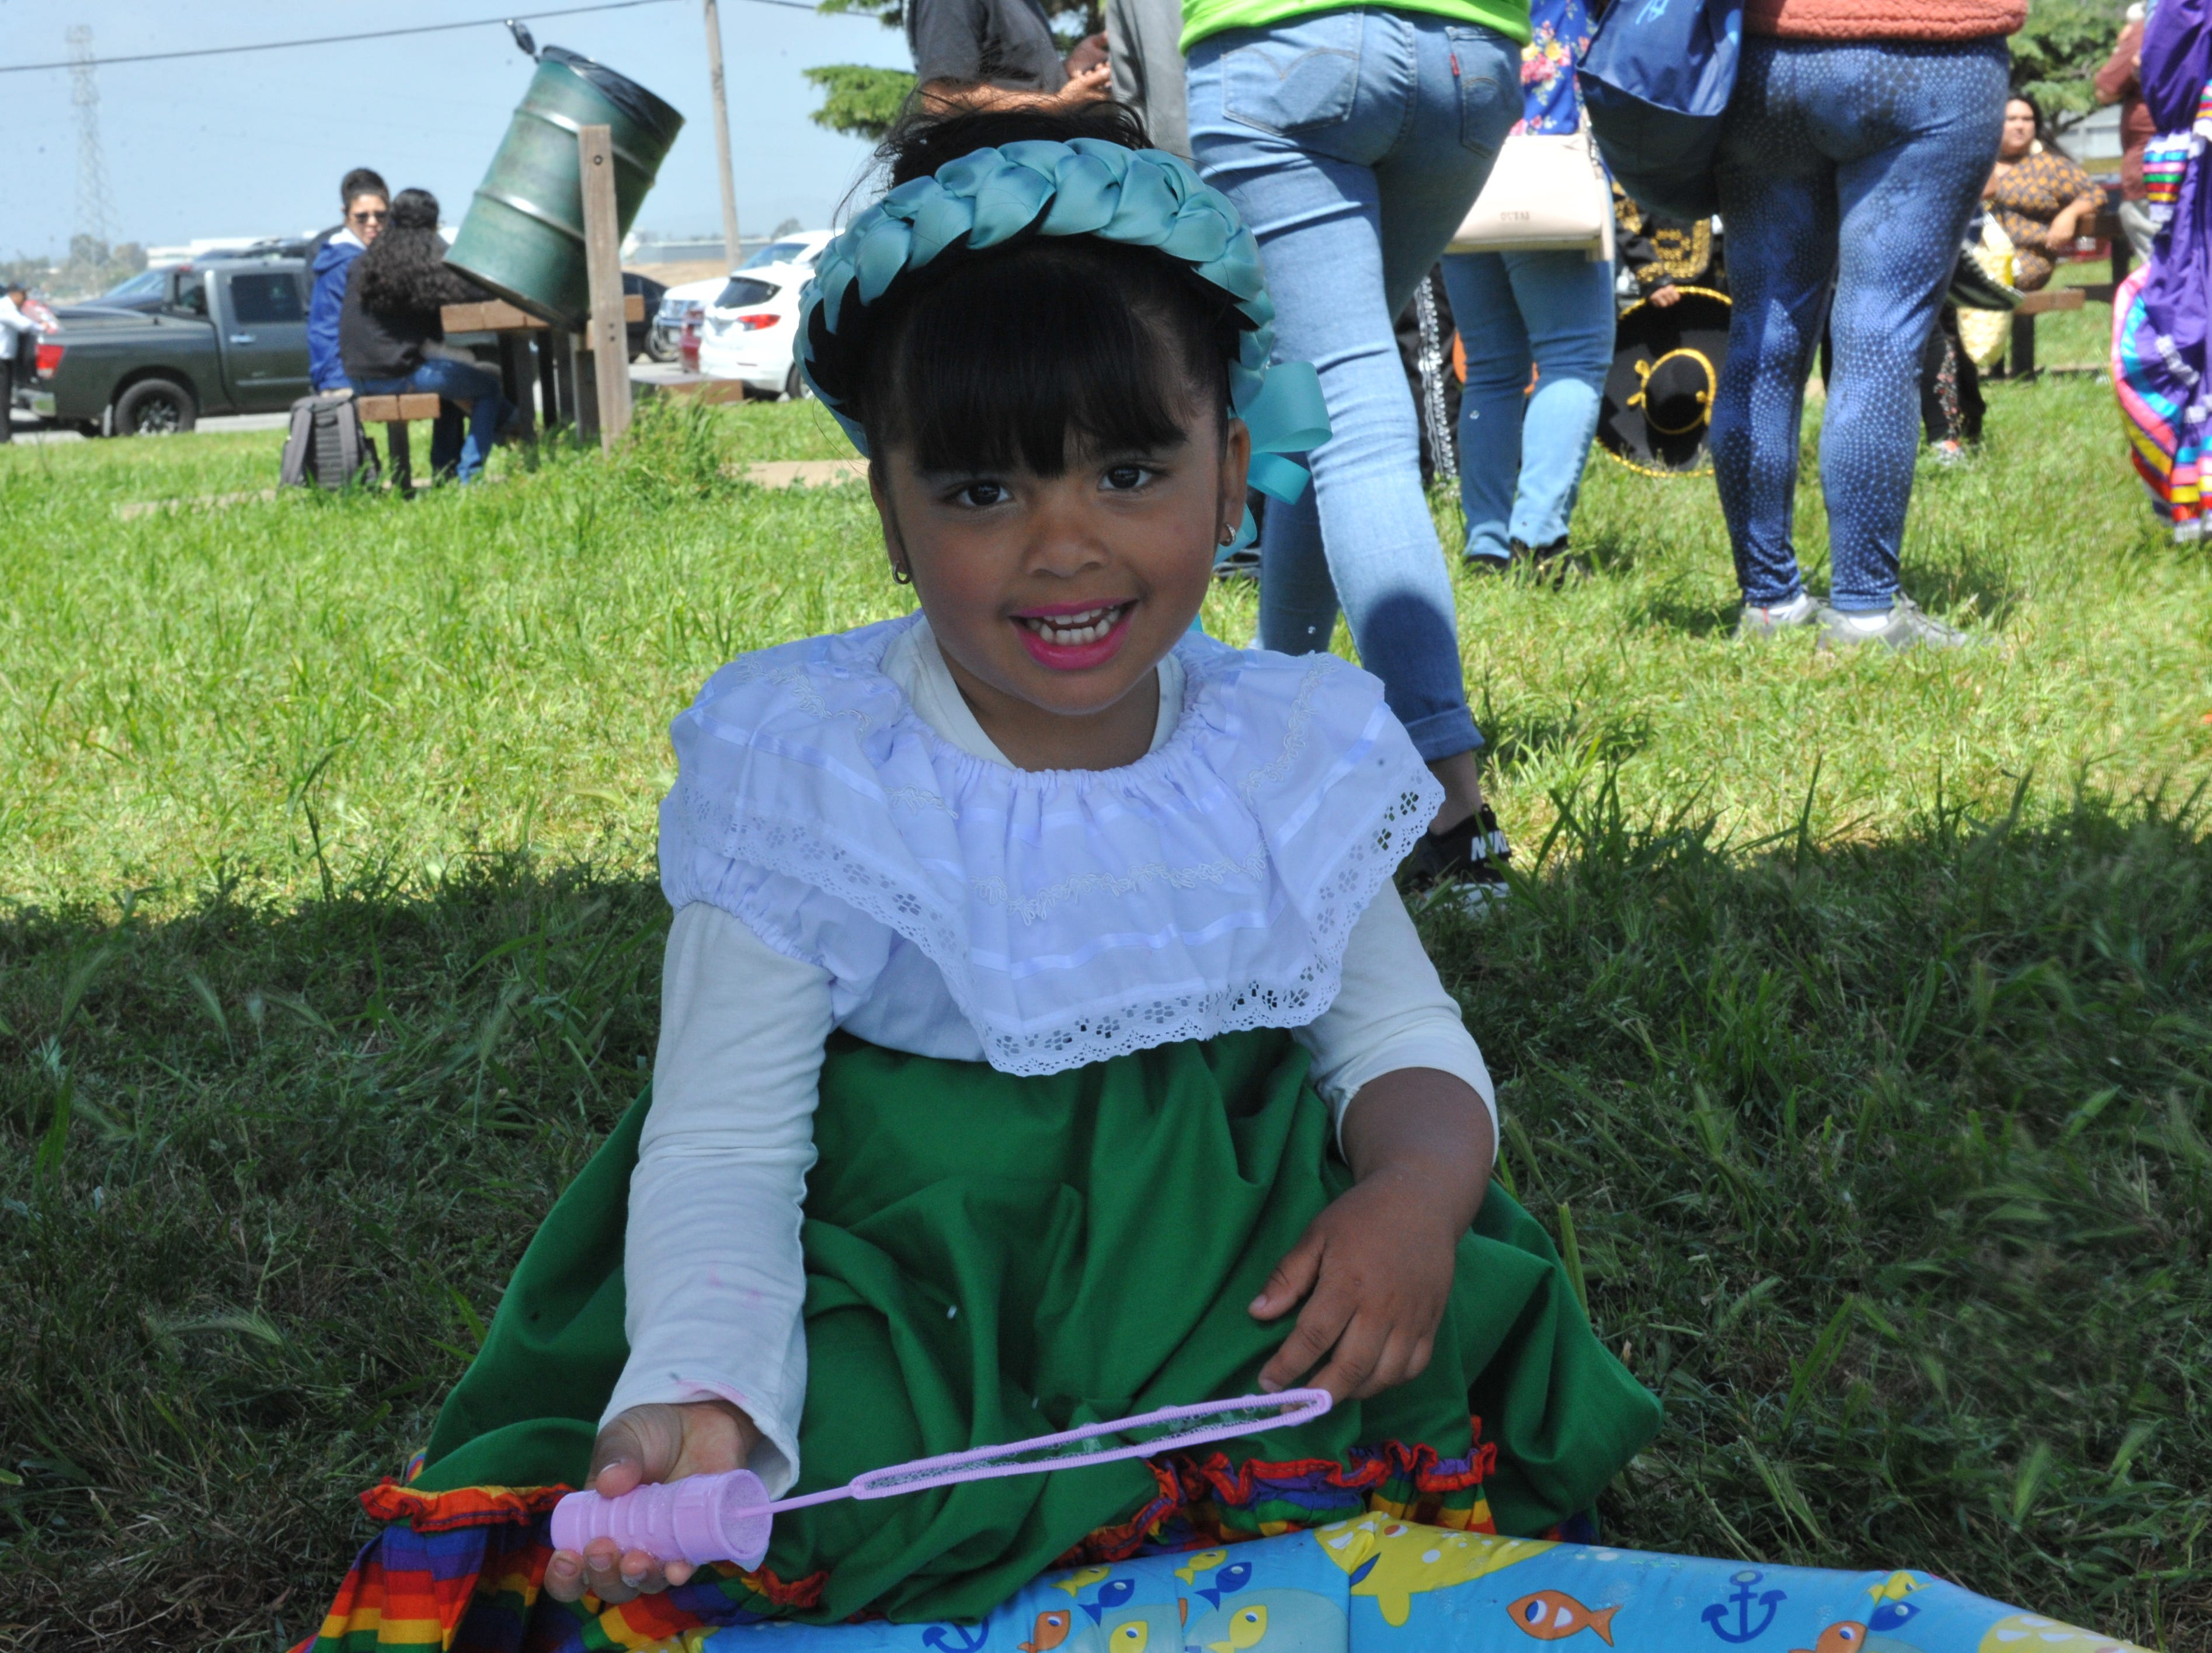 Valeria Hernández Alcala, 3, plays with bubbles prior to her afternoon dance performance at the Salinas Día Del Niño on April 28, 2019.